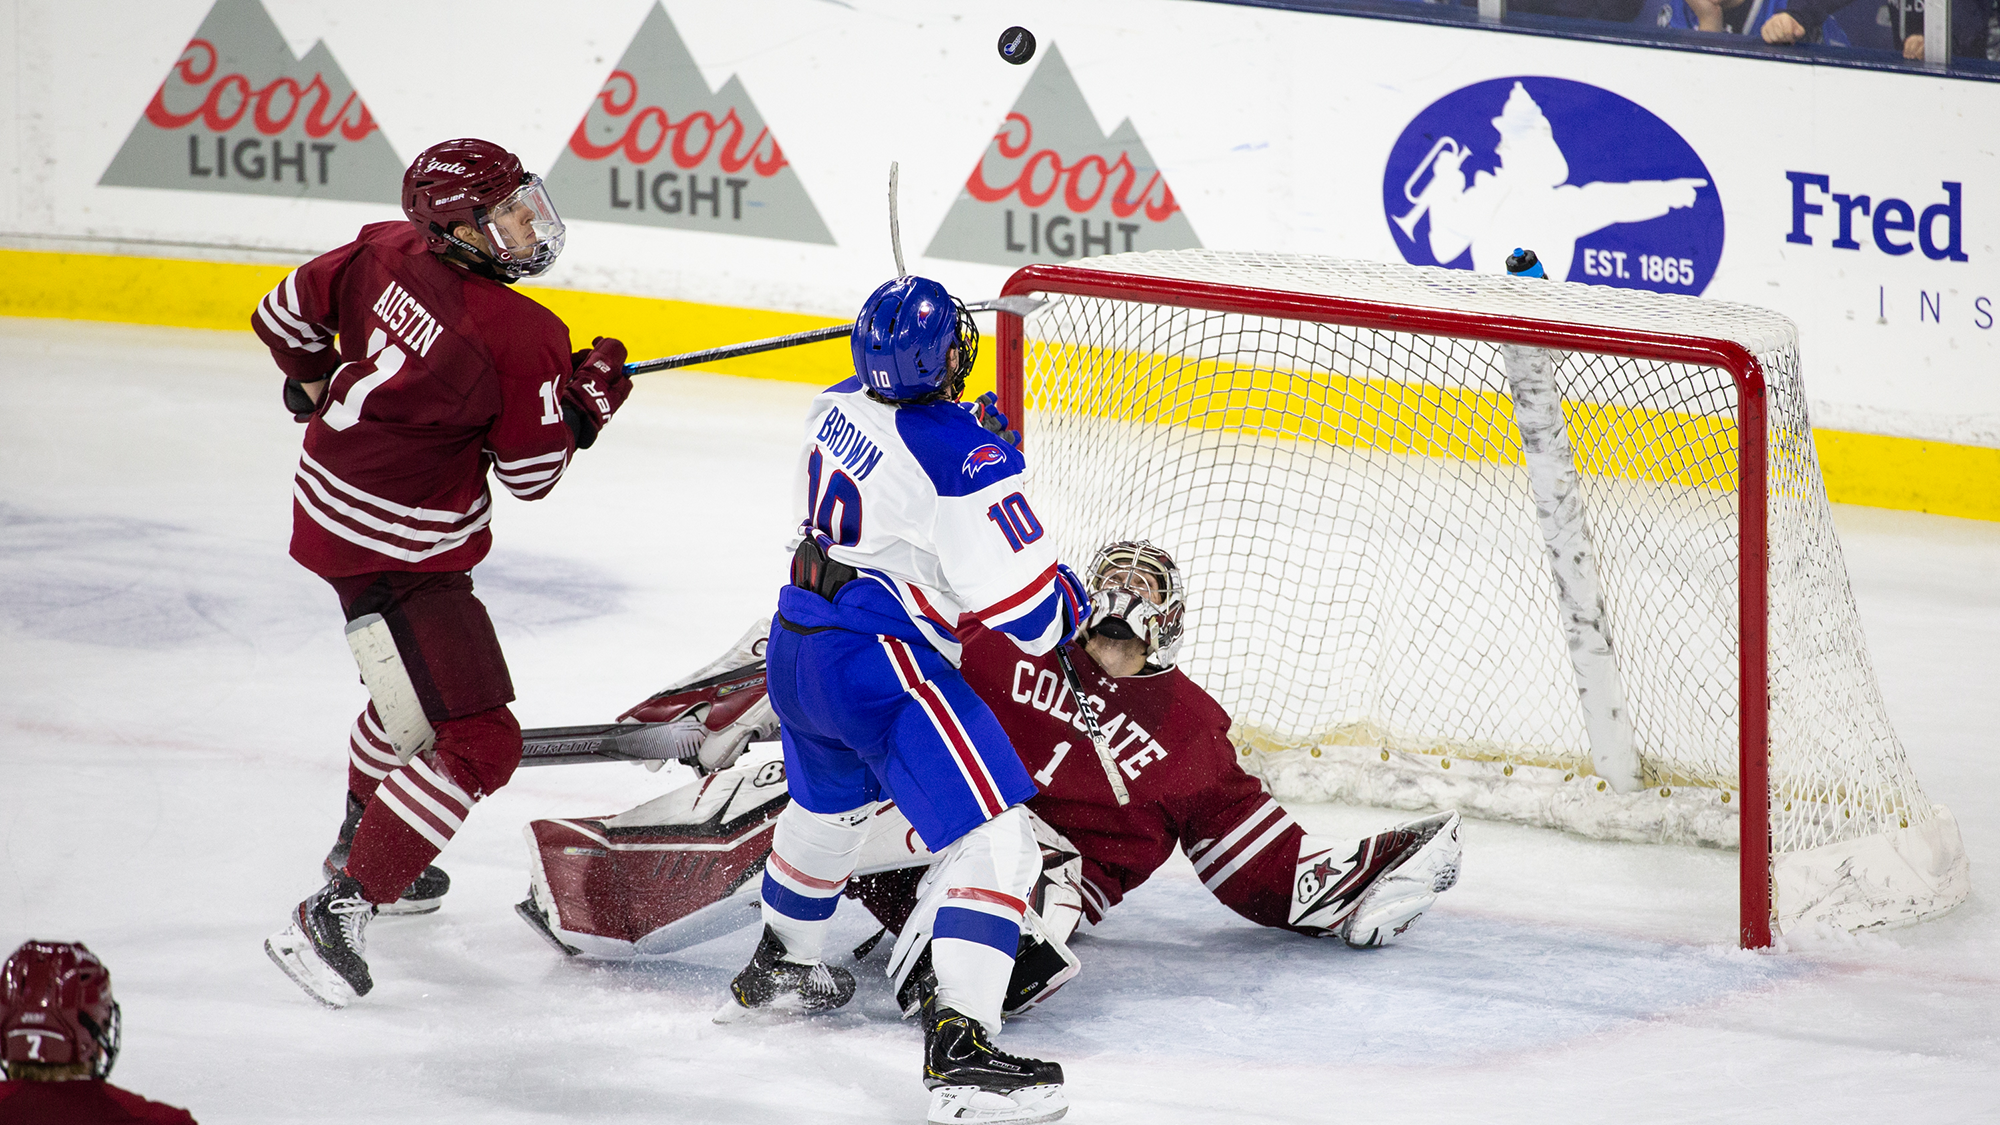 River Hawks skate to scoreless tie in series finale vs. Colgate